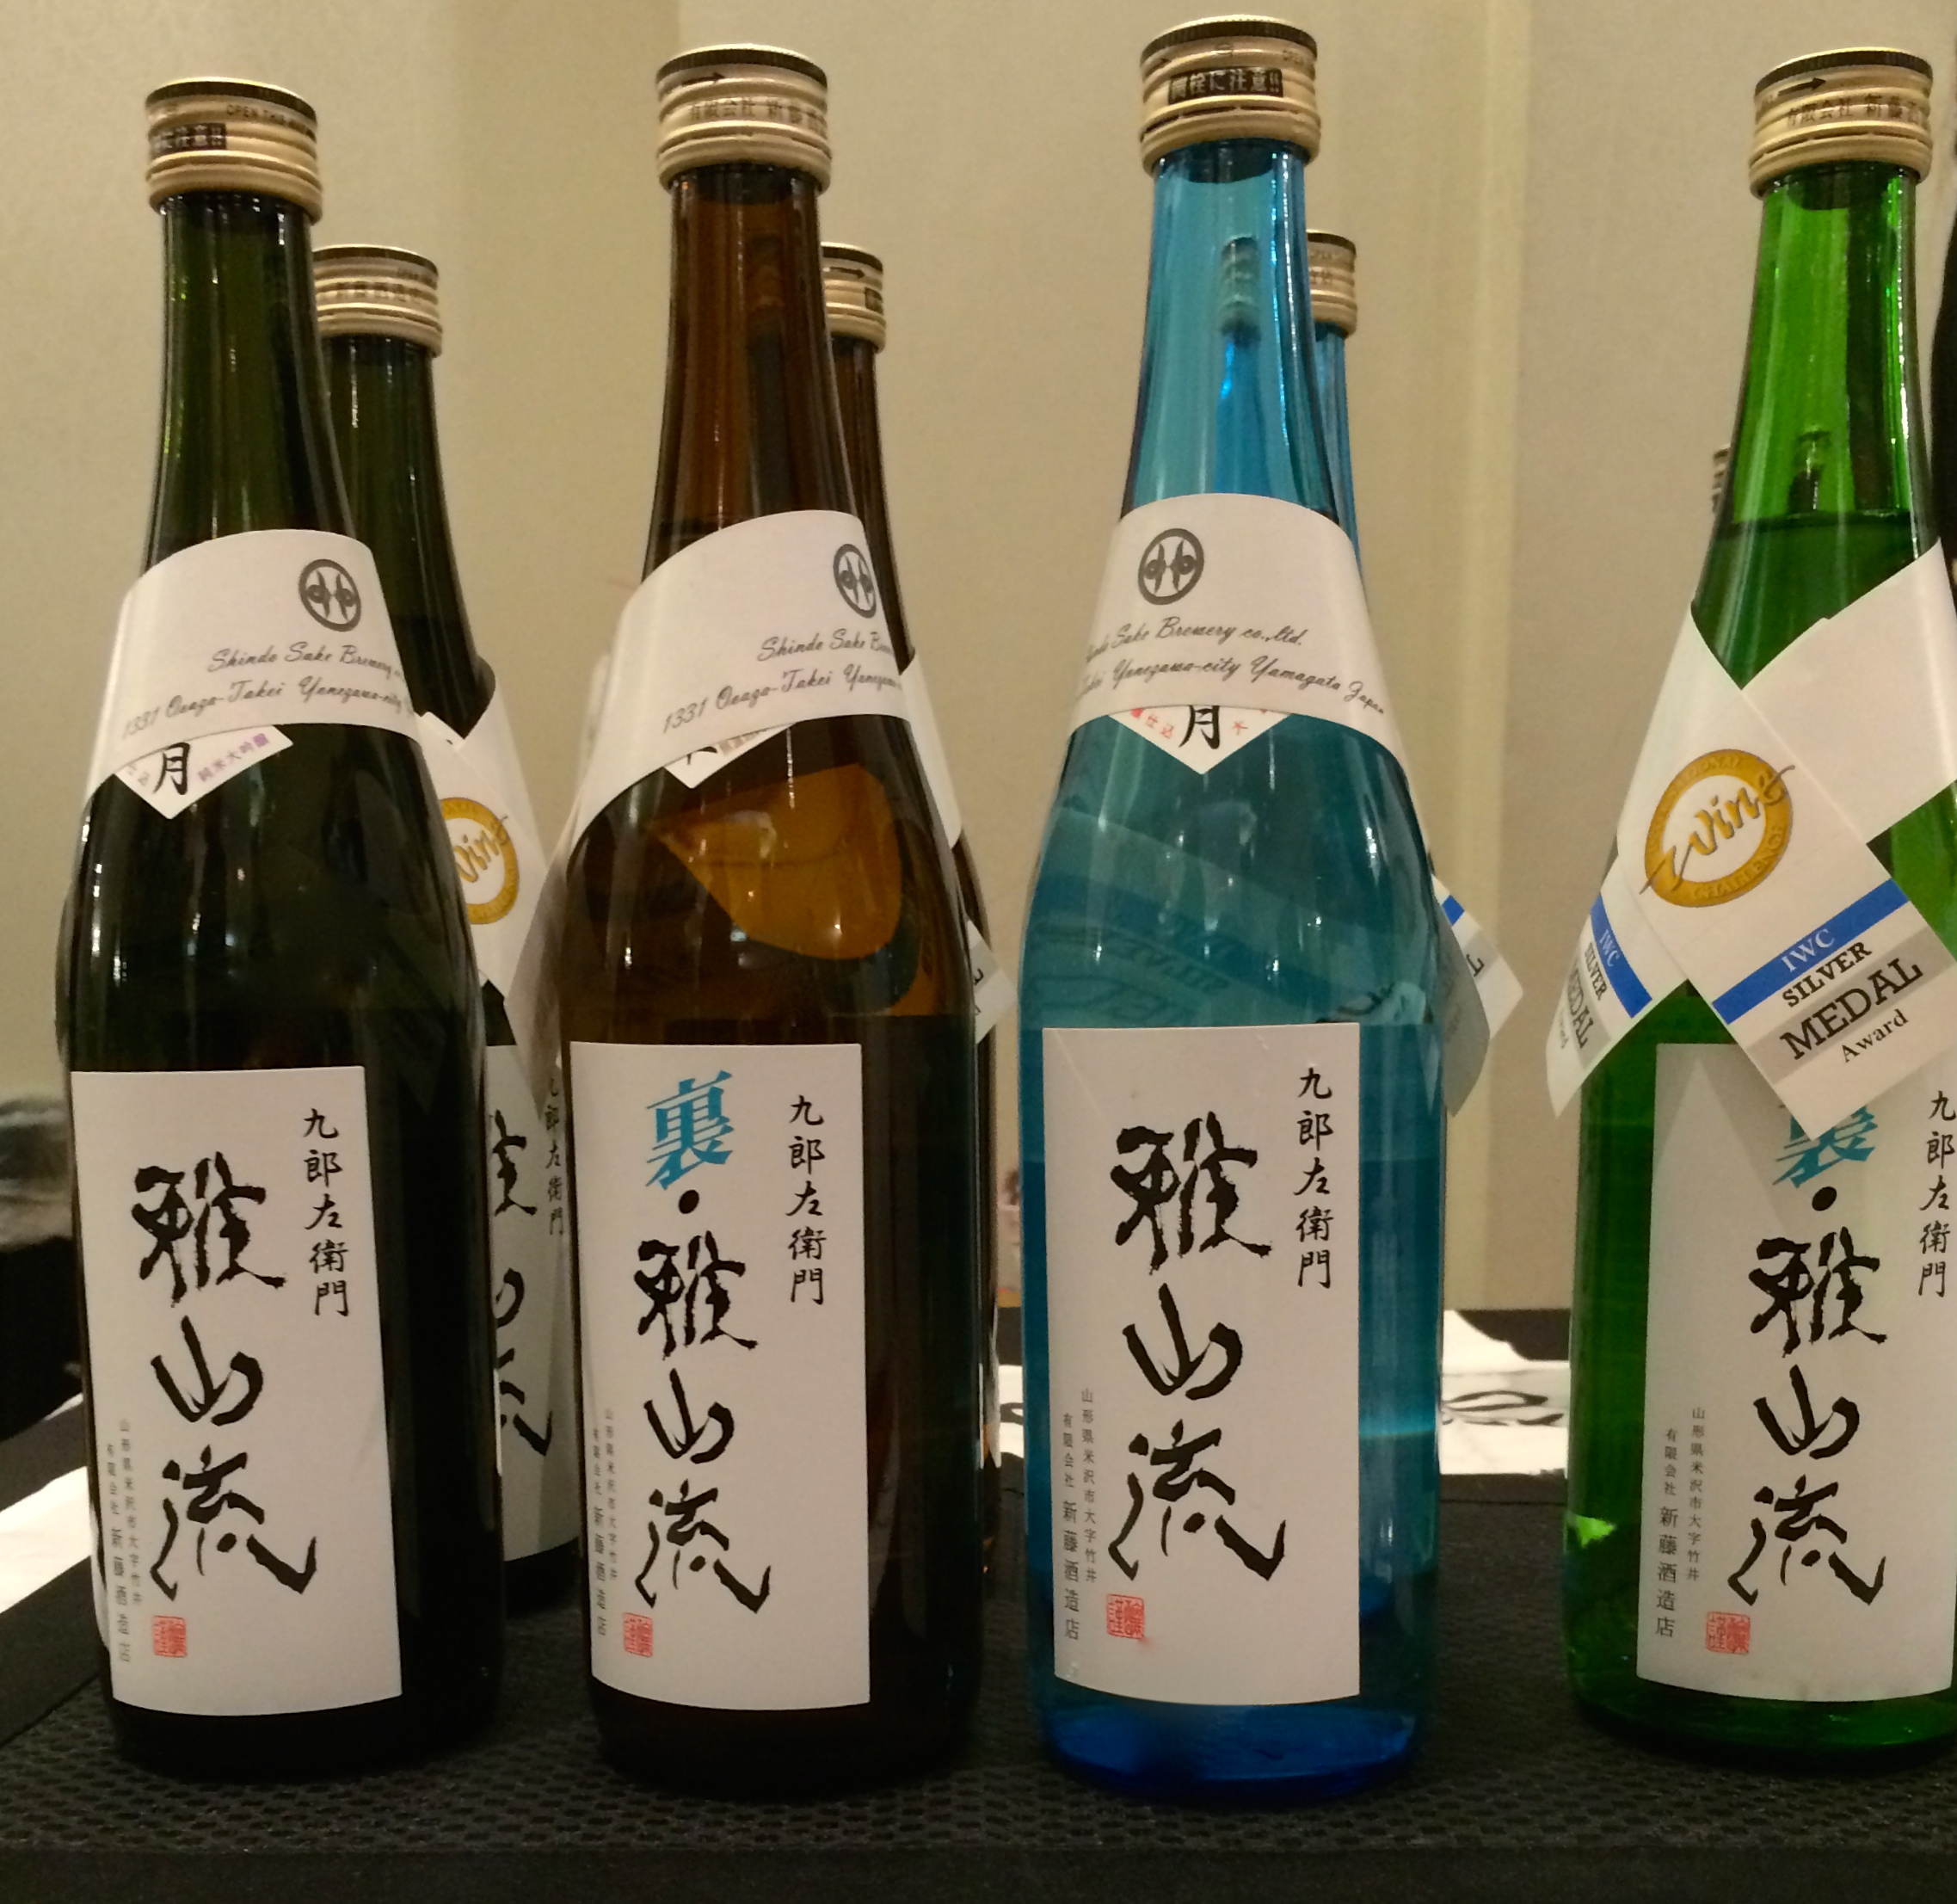 Very tasty - Gasanryu series has two categories Omote-front and Ura-back, Omote is more traditional, ura is its unique and free spirited sister.